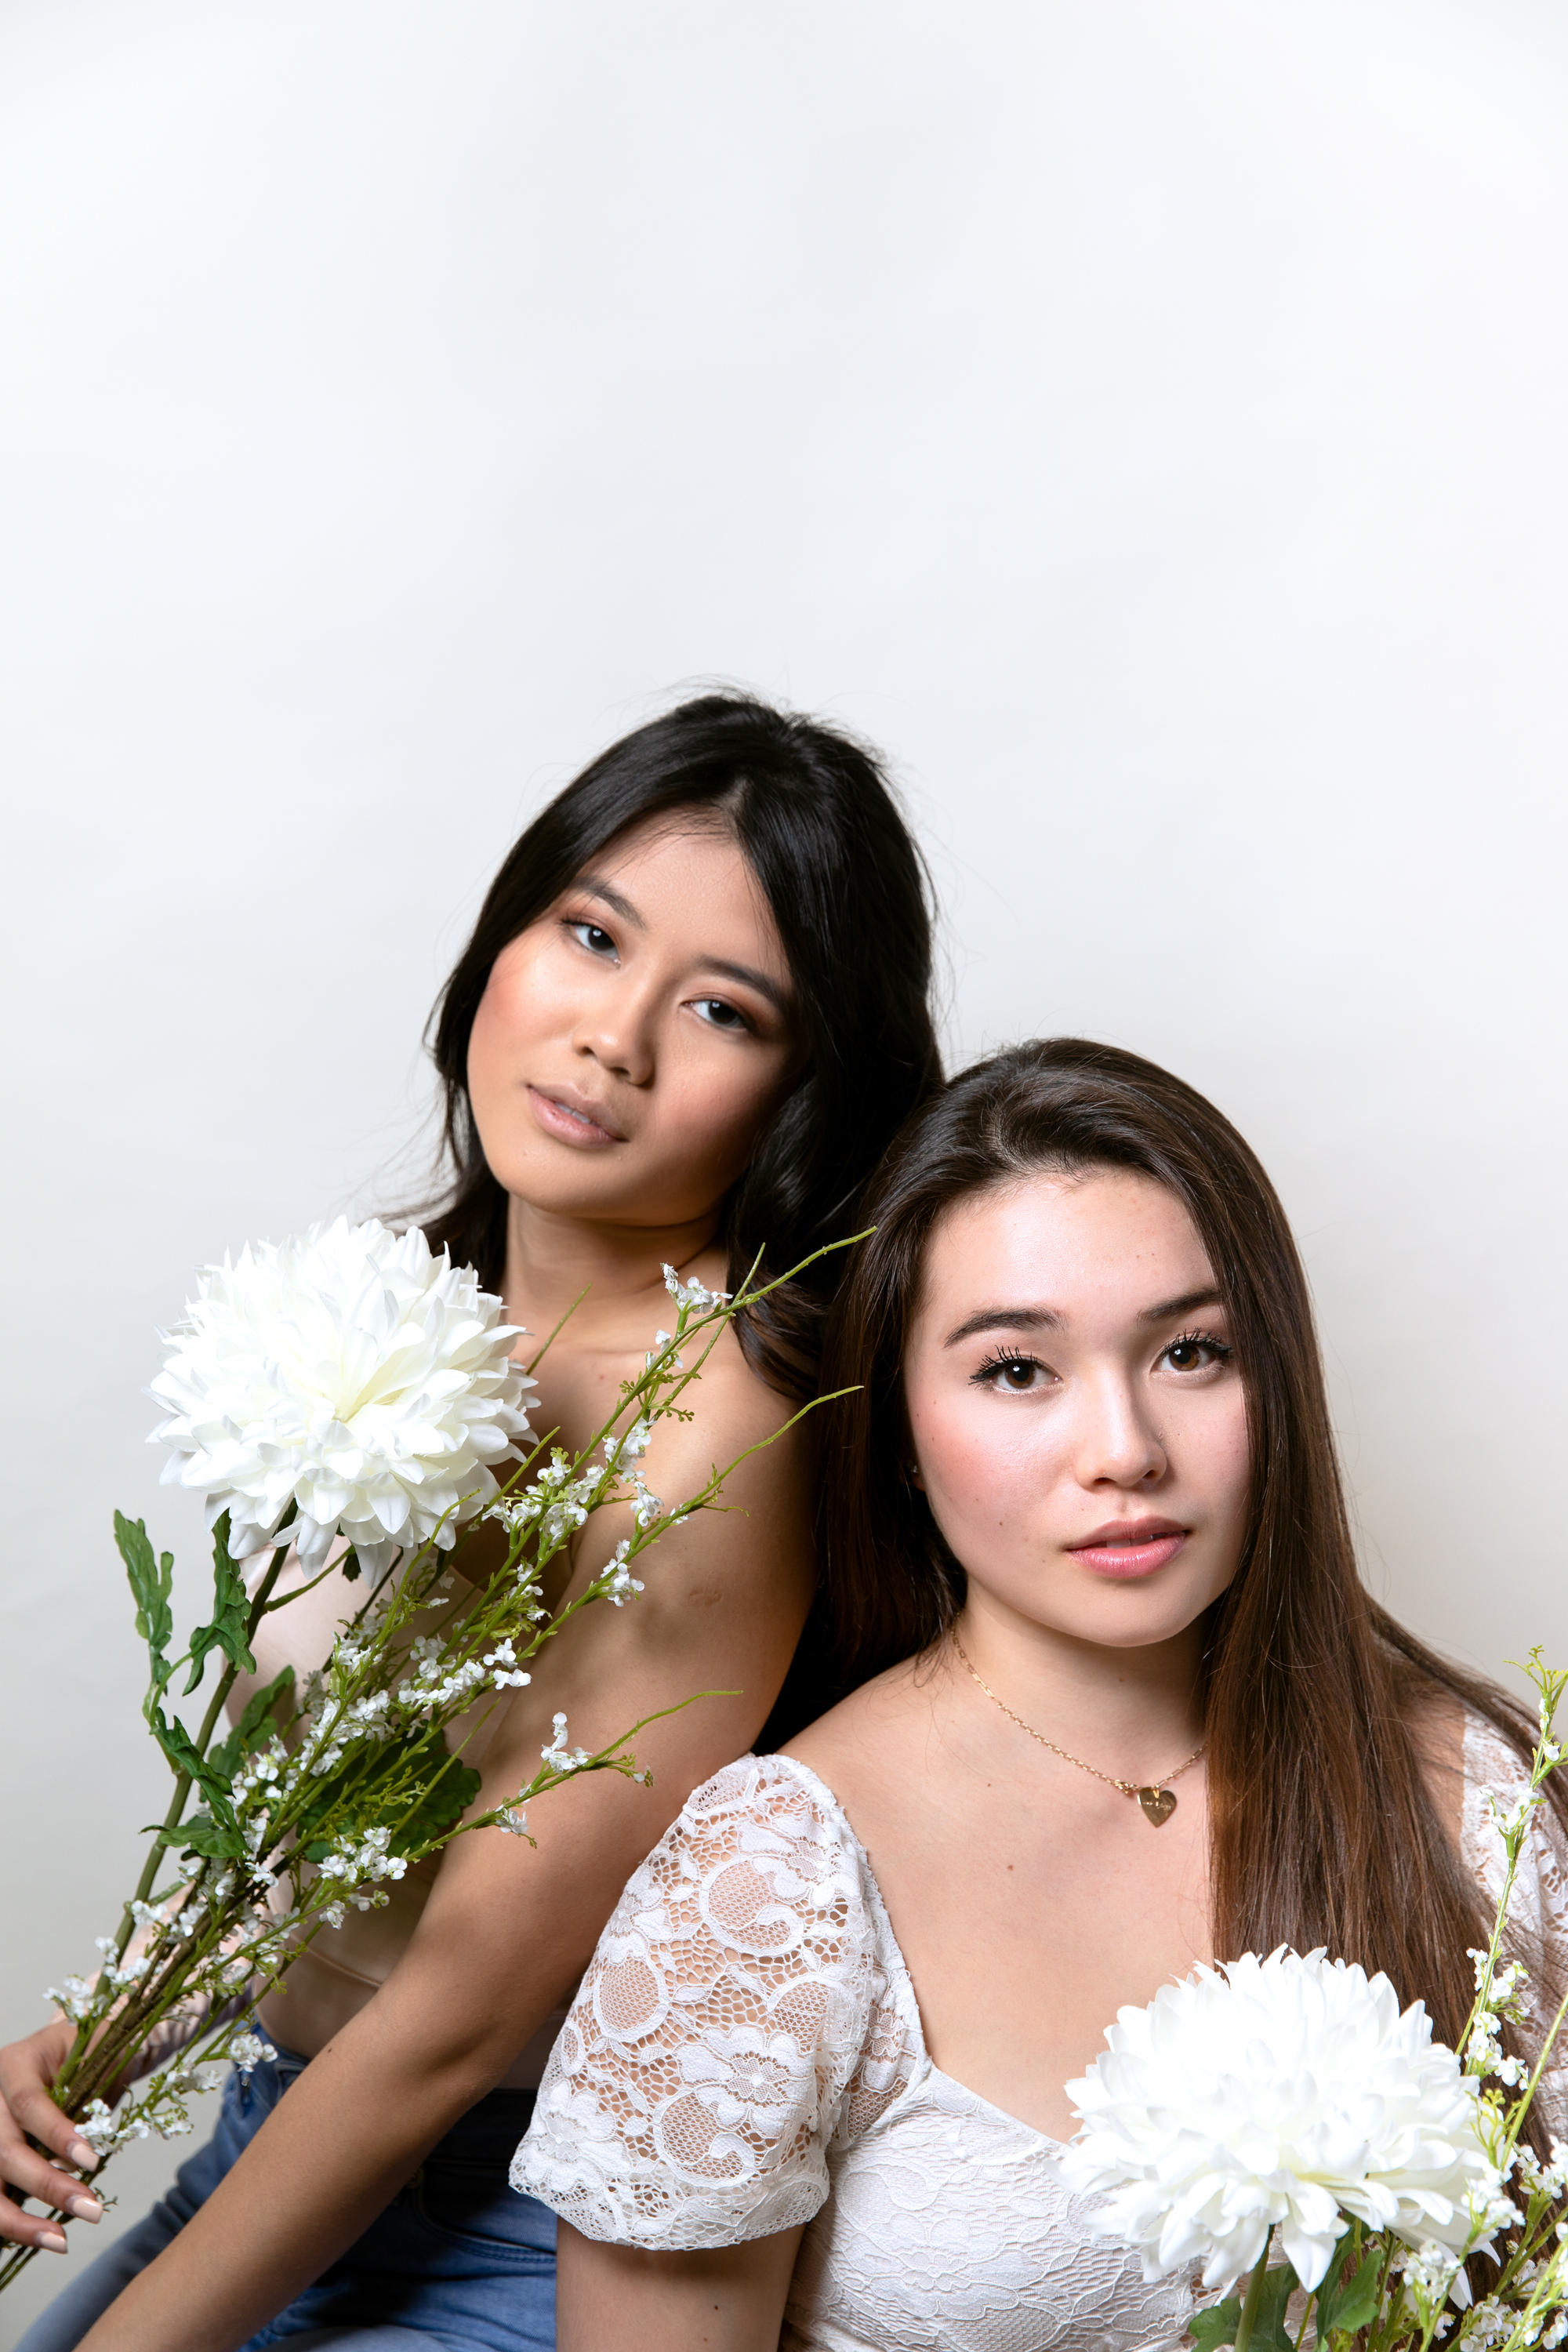 Two women solemnly looking at the camera holding white flowers.